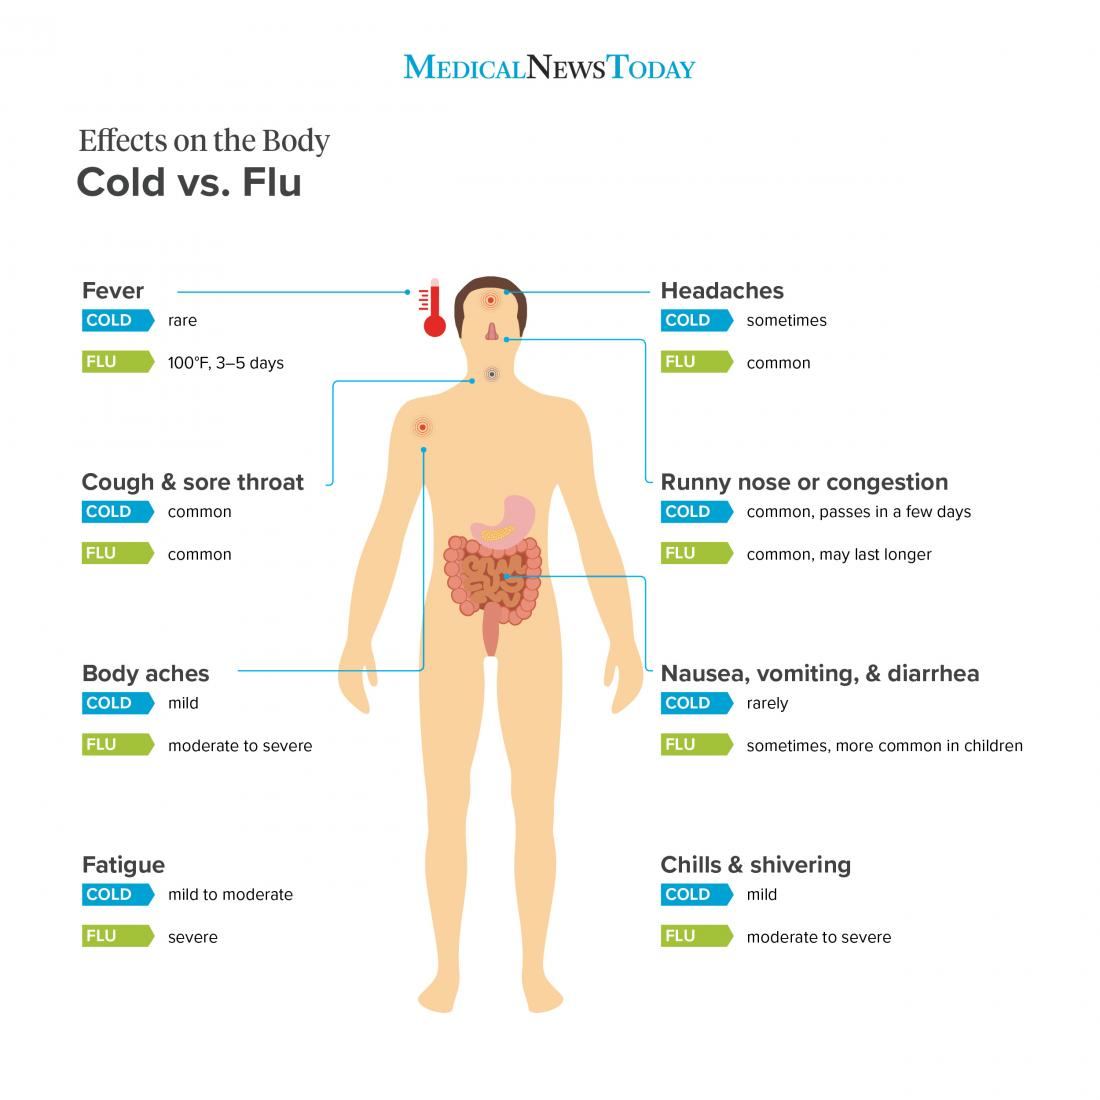 cold vs flu effects on the body infographic br image credit stephen kelly 2018 br<!--mce:protected %0A-->